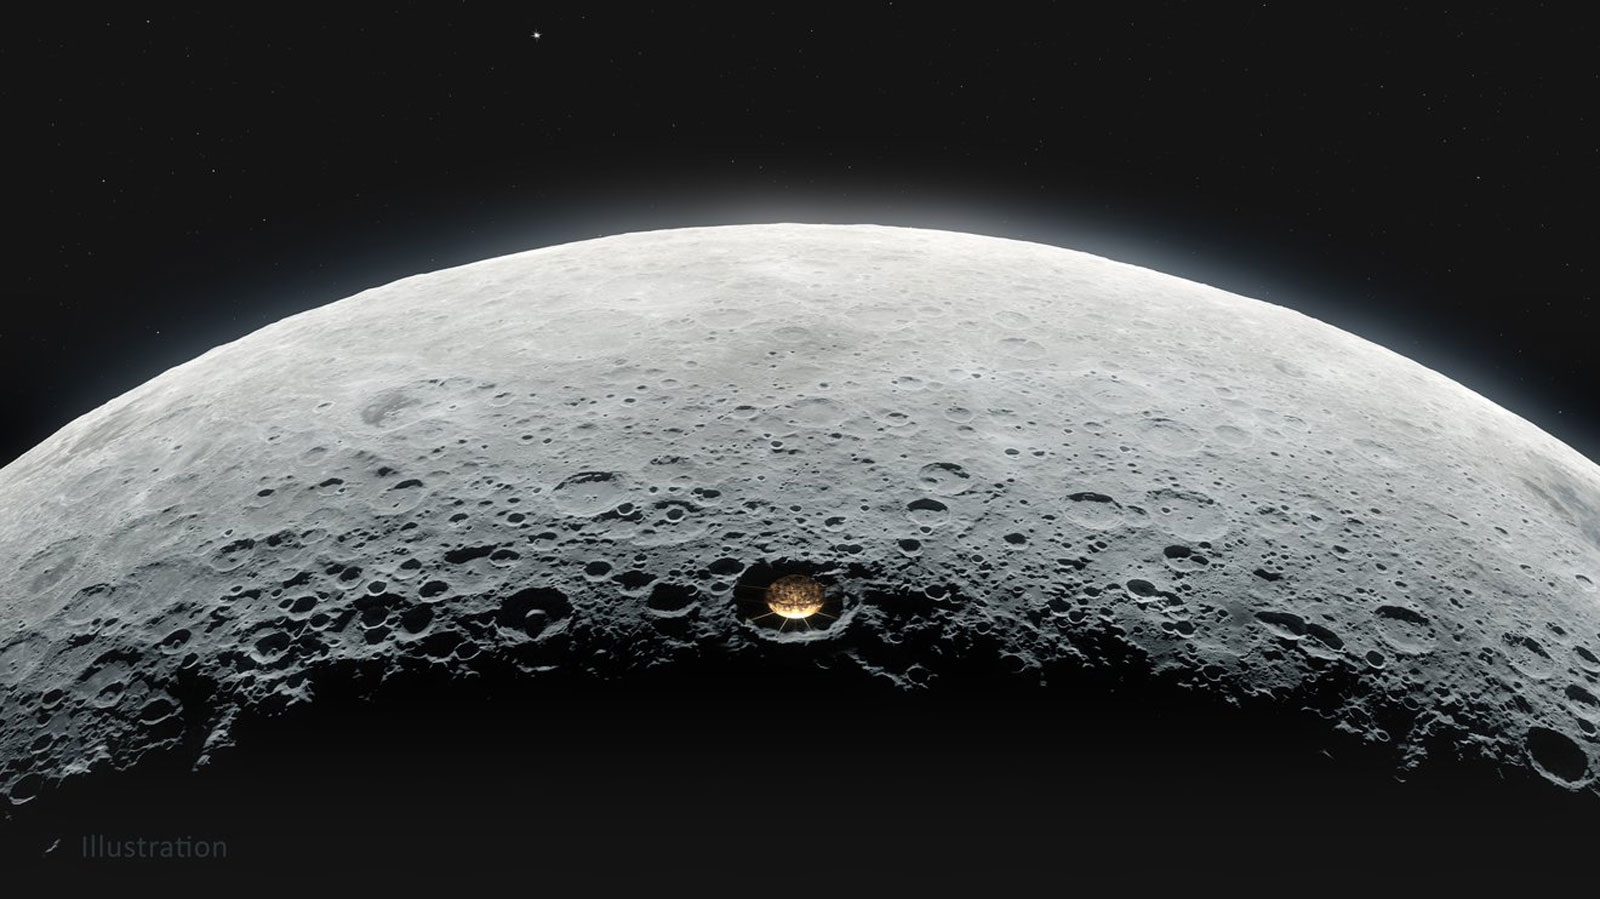 This illustration shows the proposed Lunar Crater Radio Telescope on the far side of the moon.